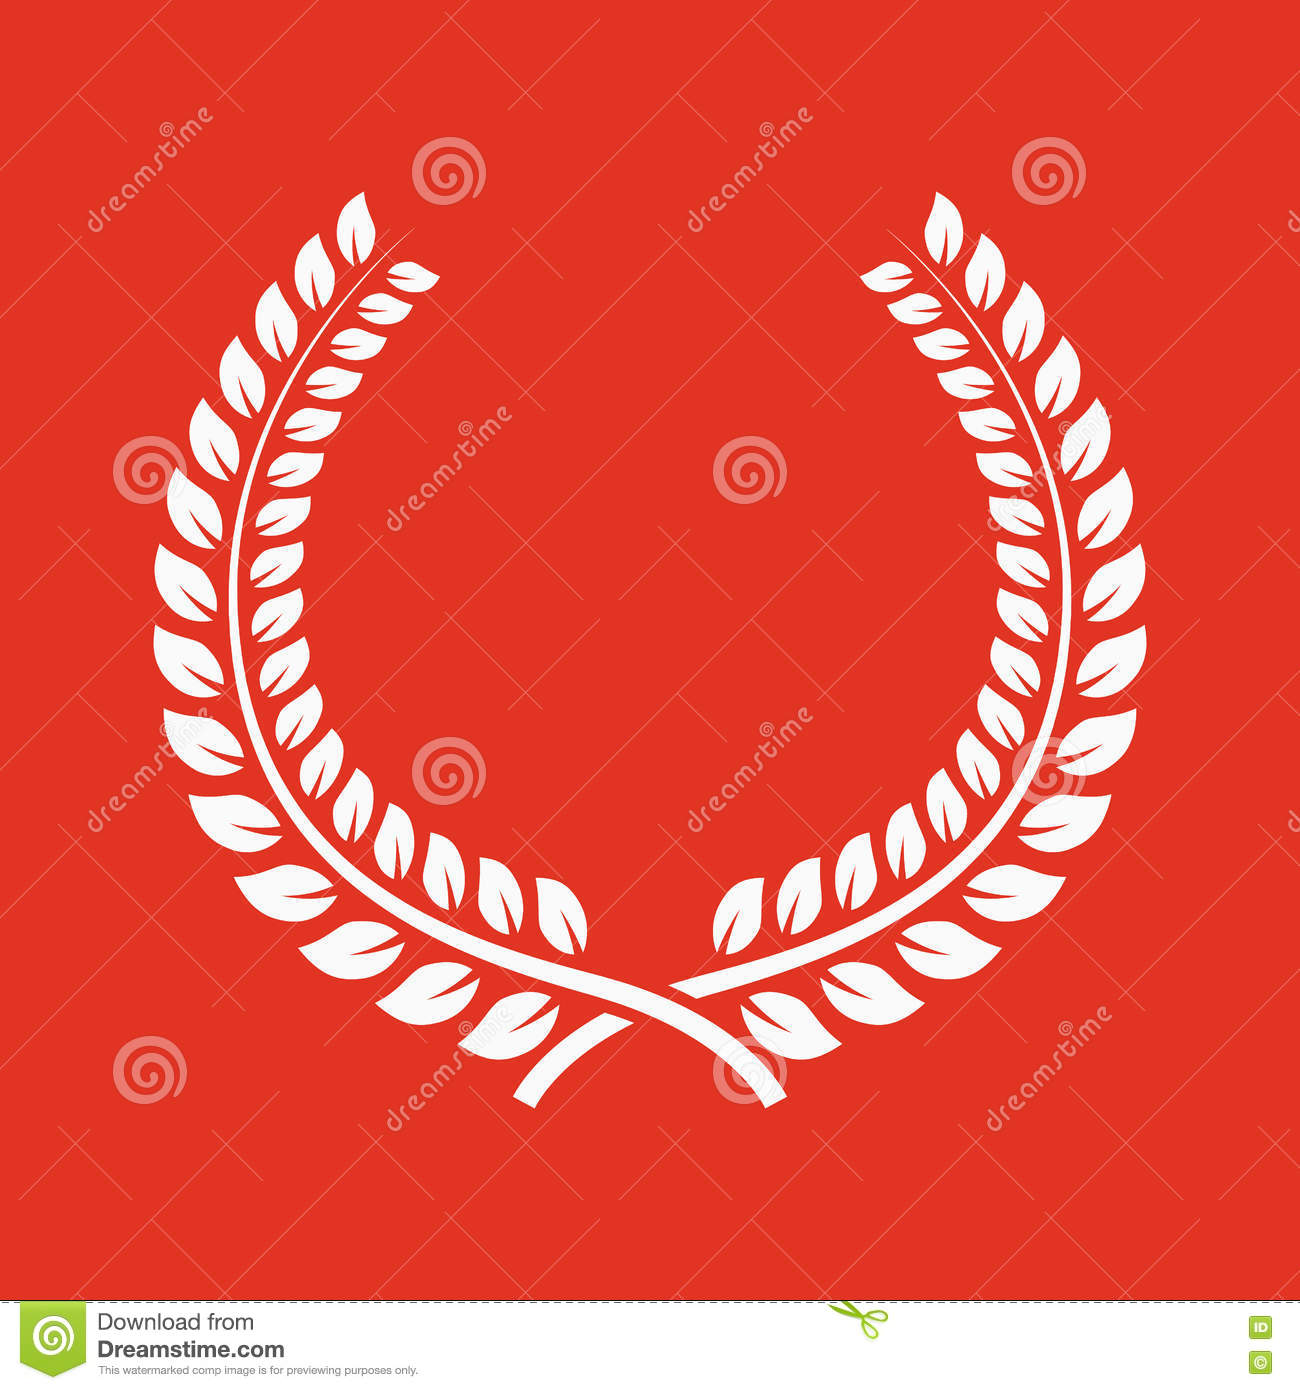 The Laurel Wreath Icon Prize And Reward Honors Symbol Flat Stock